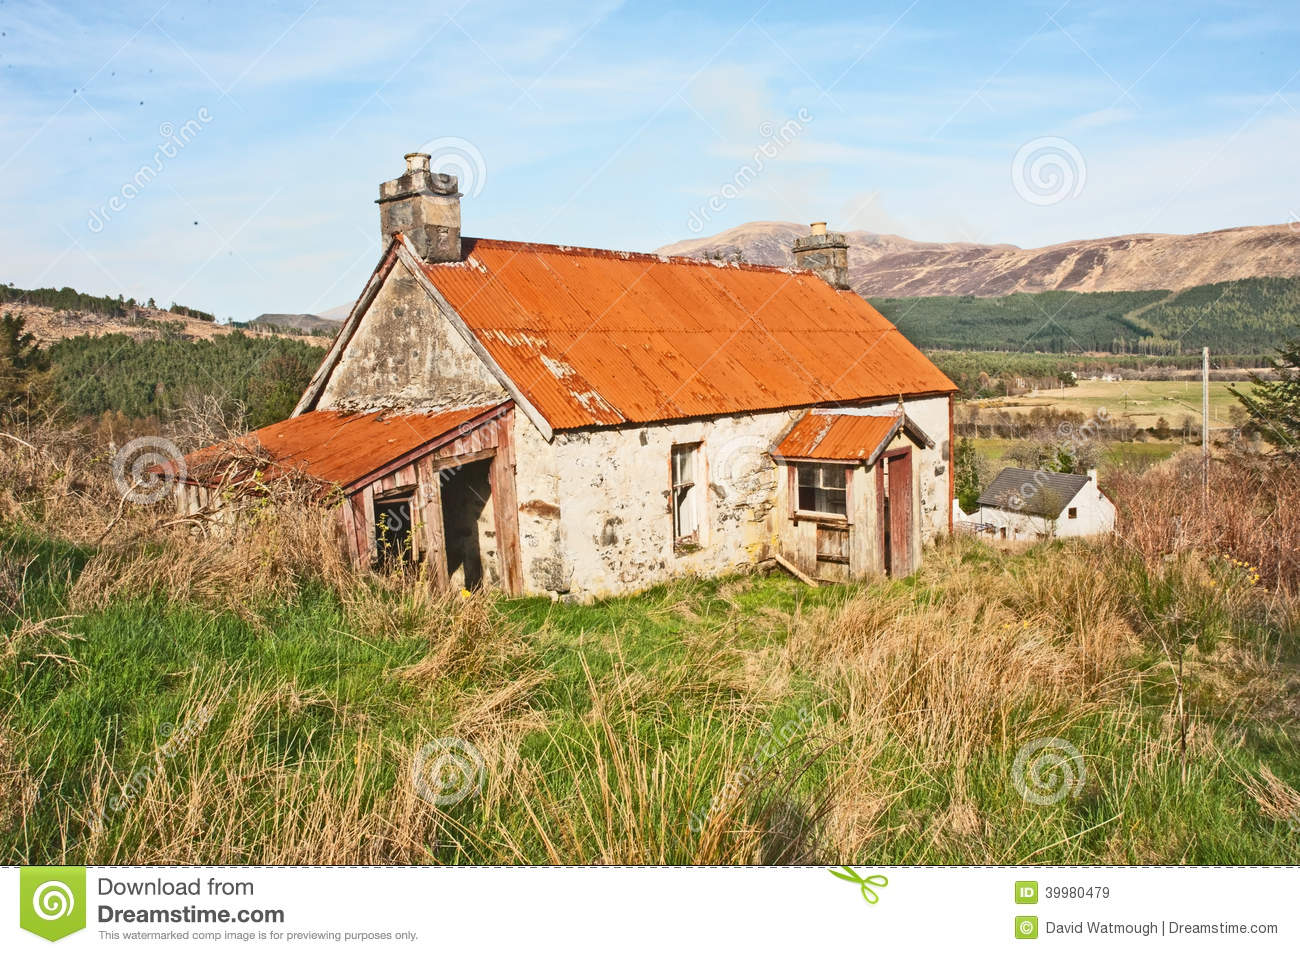 Derelict Cottage With Iron Roof Stock Photo - Image: 39980479